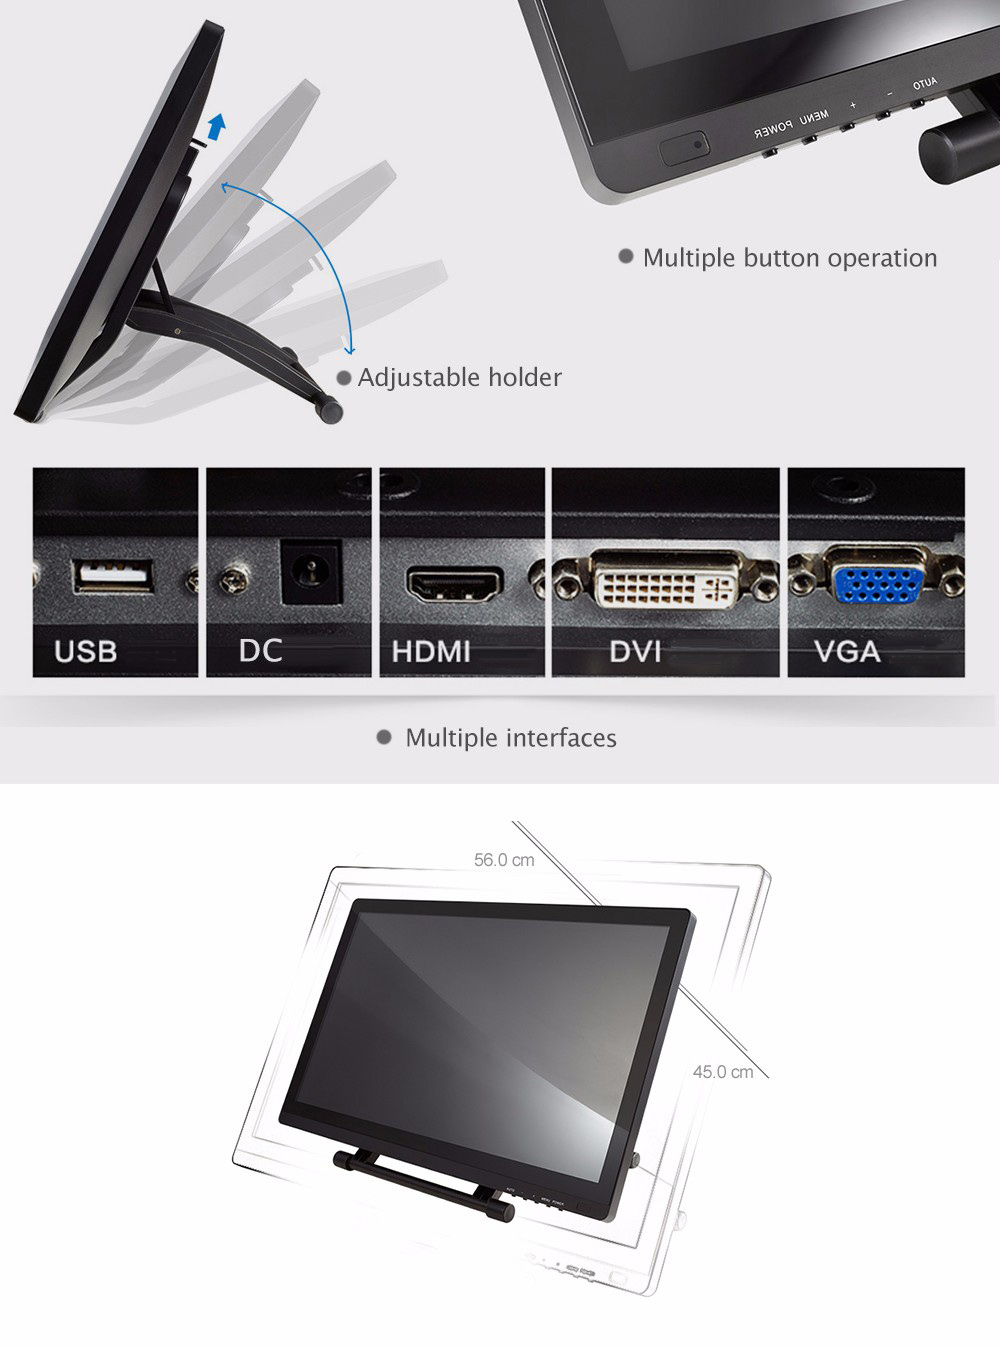 Ugee Ug 2150 P50s Pen Digital Painting Drawing Tablet 47909 Genius I608x Mouse With Pad 215 Inch Ips Screen Smart 5080lpi Resolution